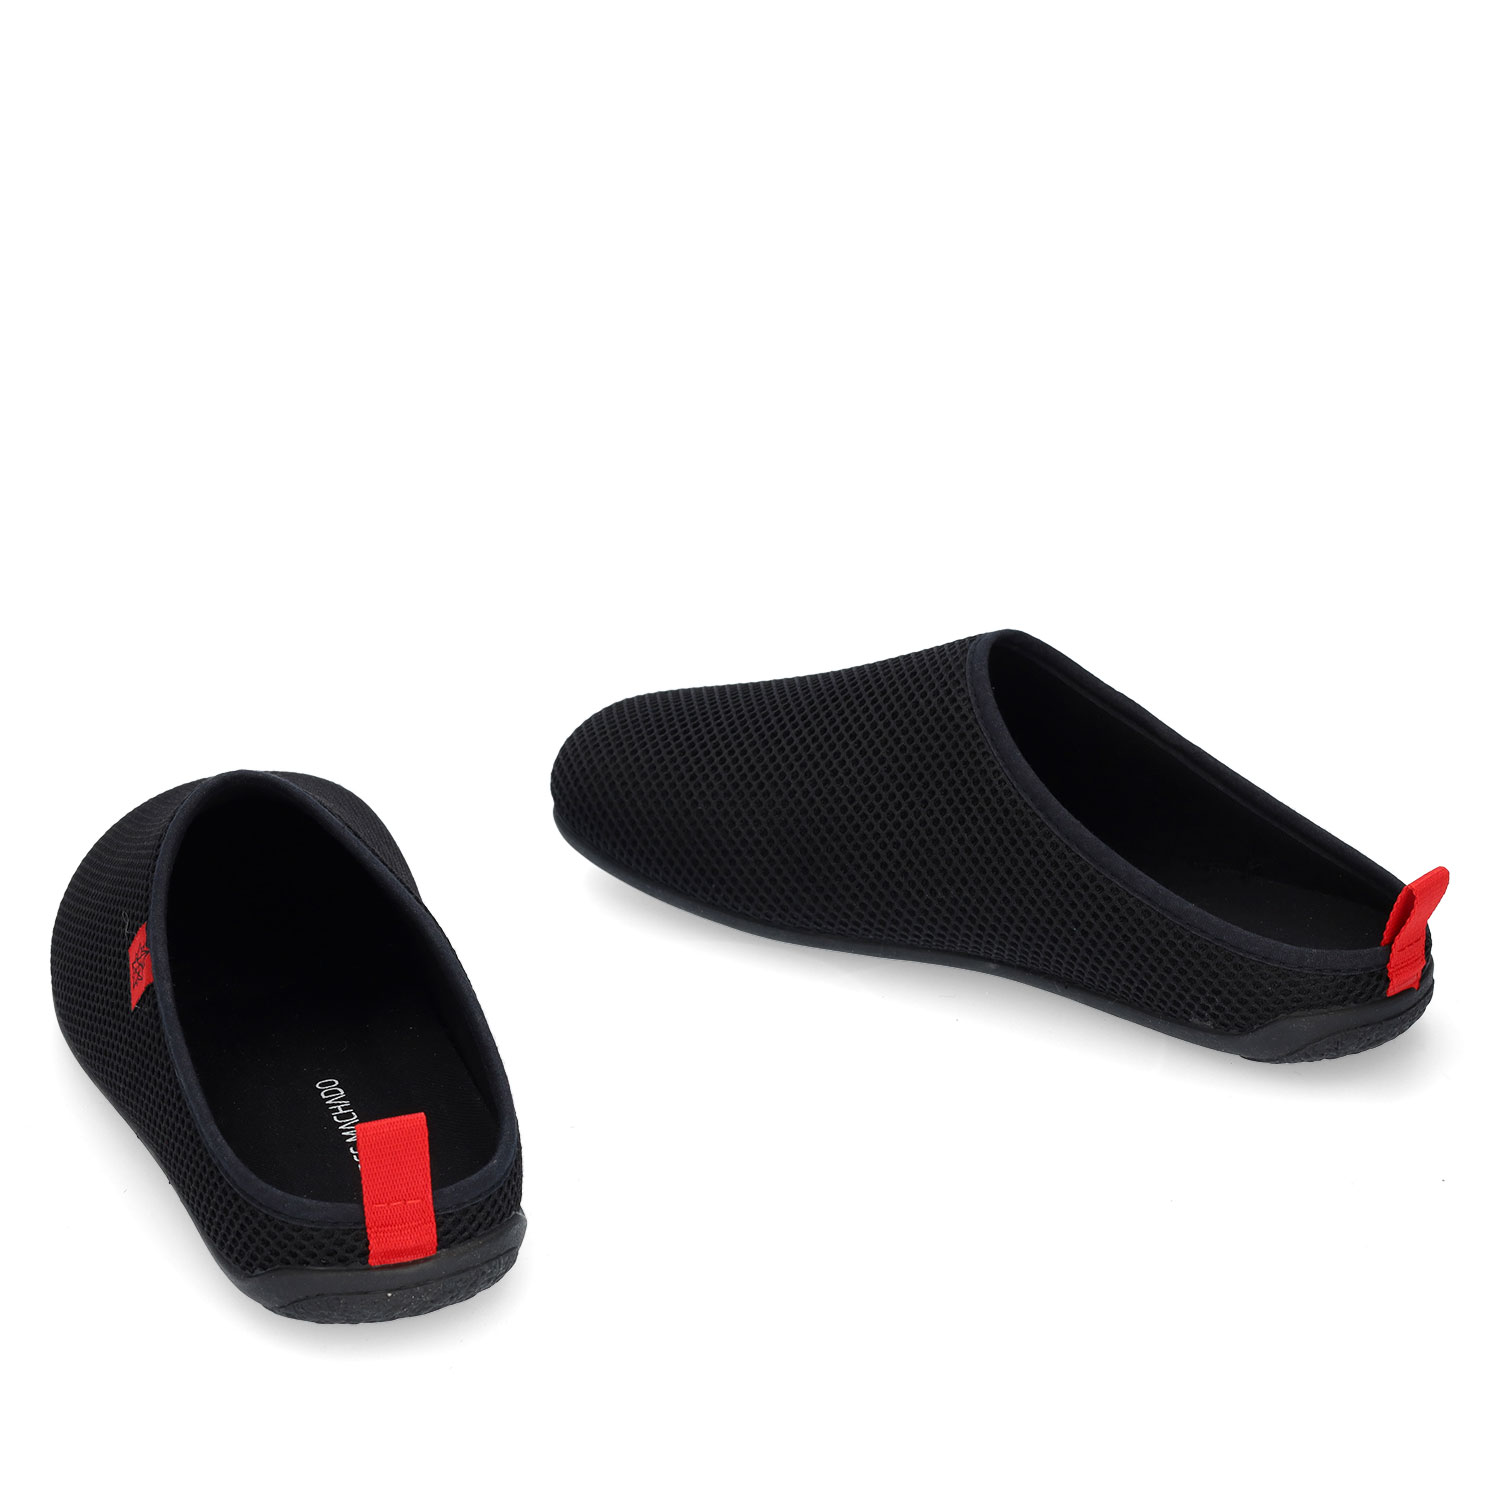 Unisex Slippers in Black mesh with Black outsole